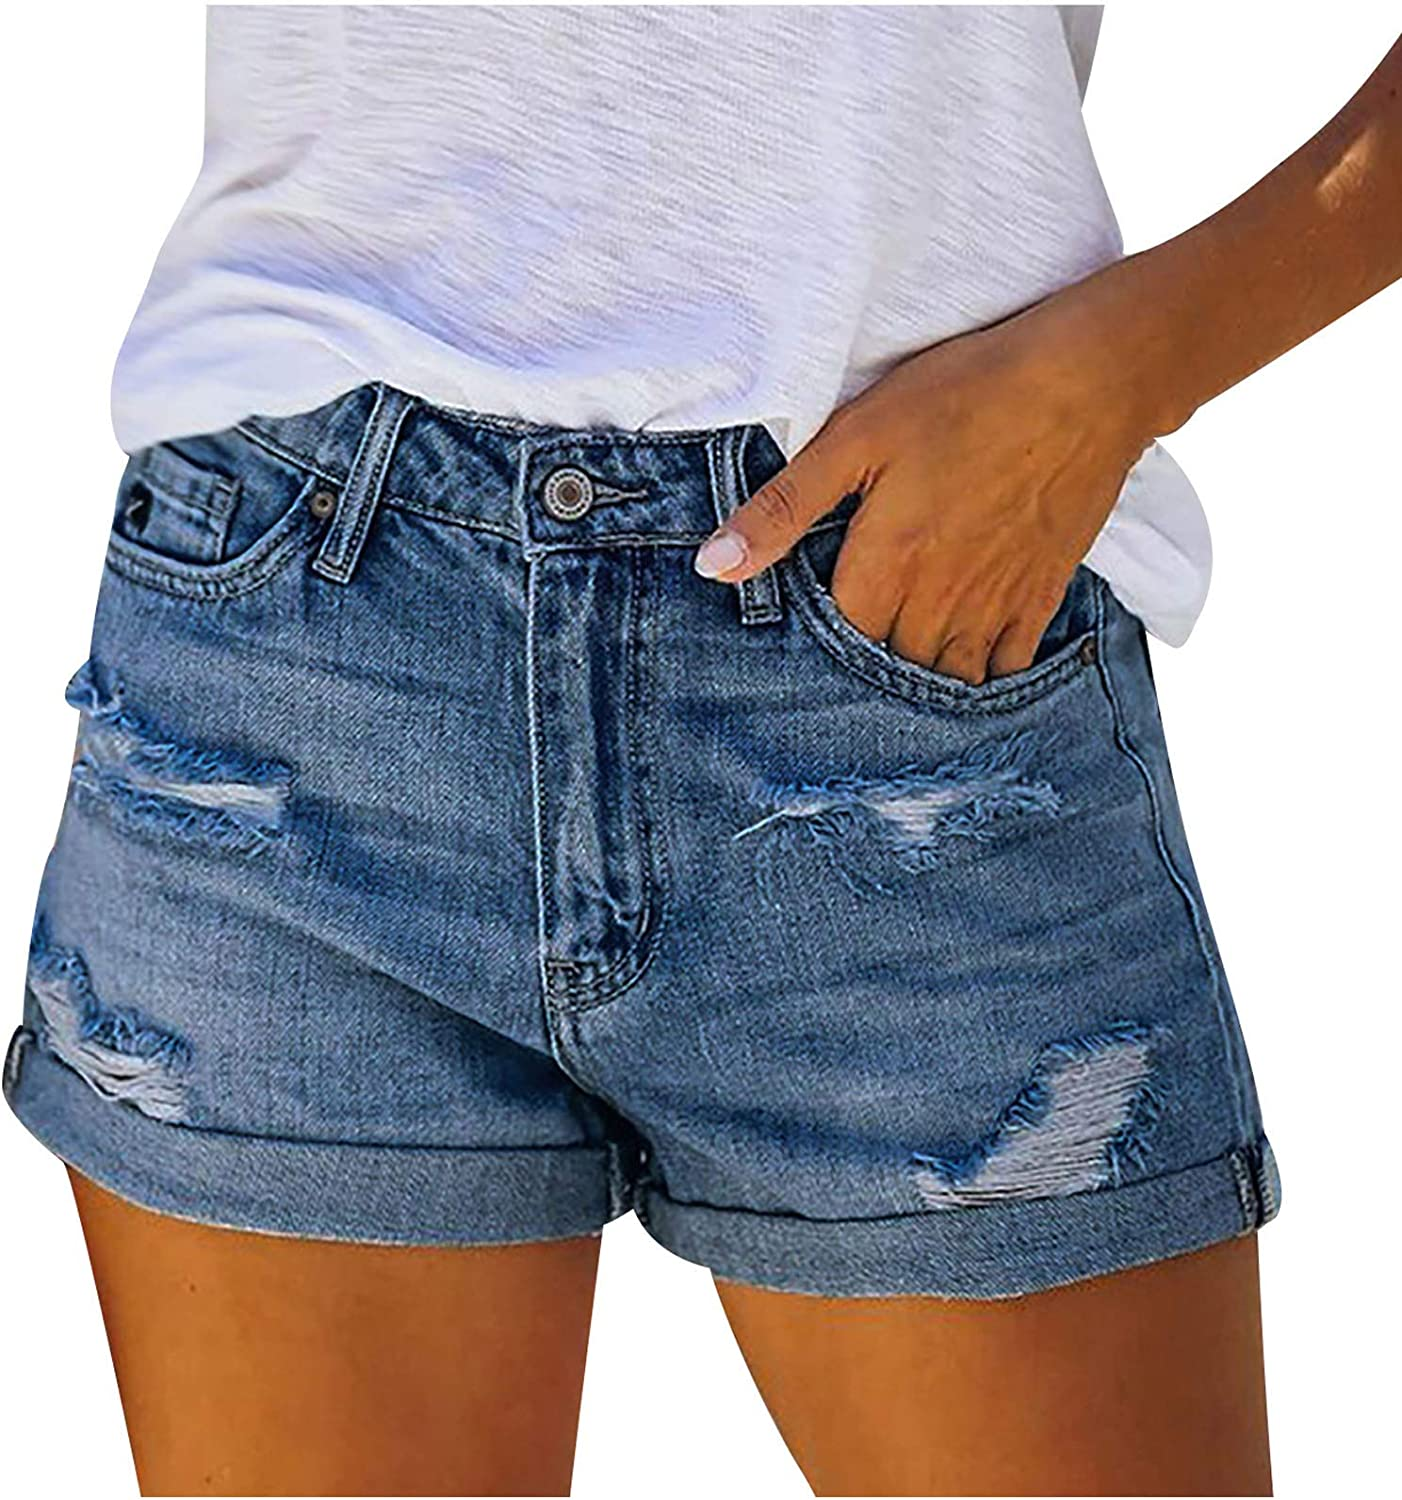 Hessimy Jean Shorts for Women,Women Frayed Hem Jeans Ripped Distressed Denim Shorts Mid Rise Cut Off Hot Shorts Blue